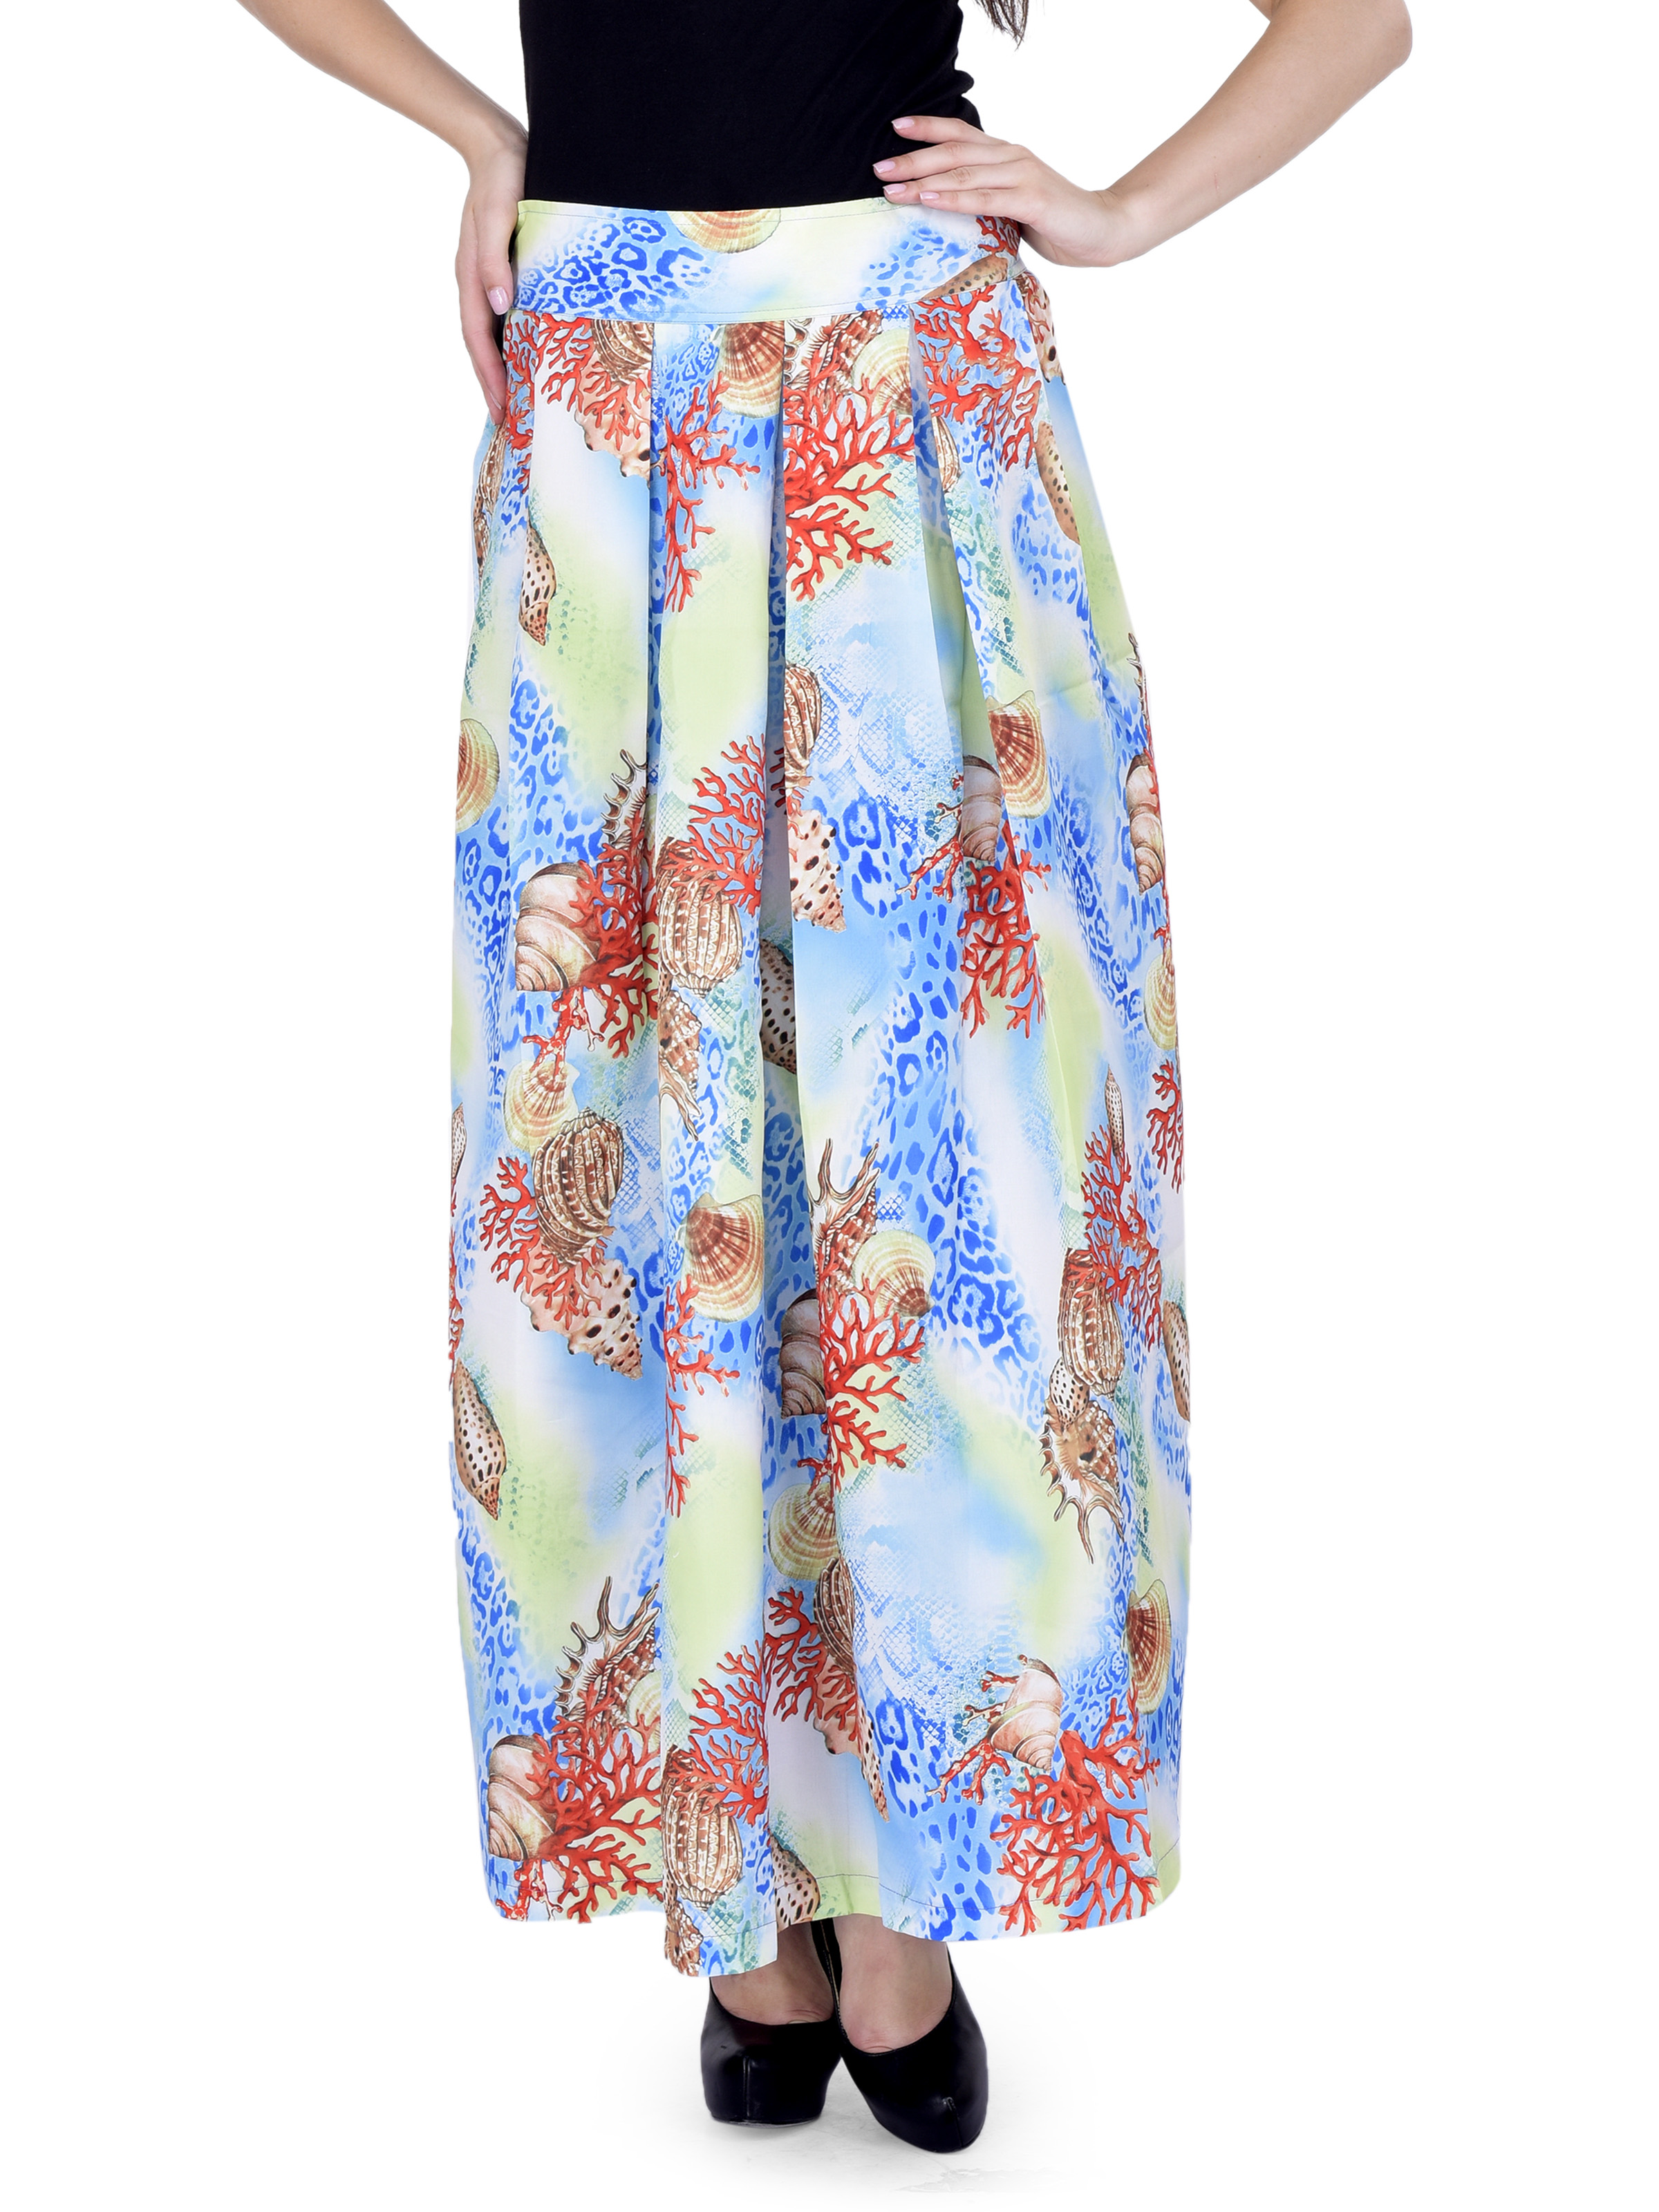 chicflic2 Women Floral Maxi Pleated Skirt Sk164i